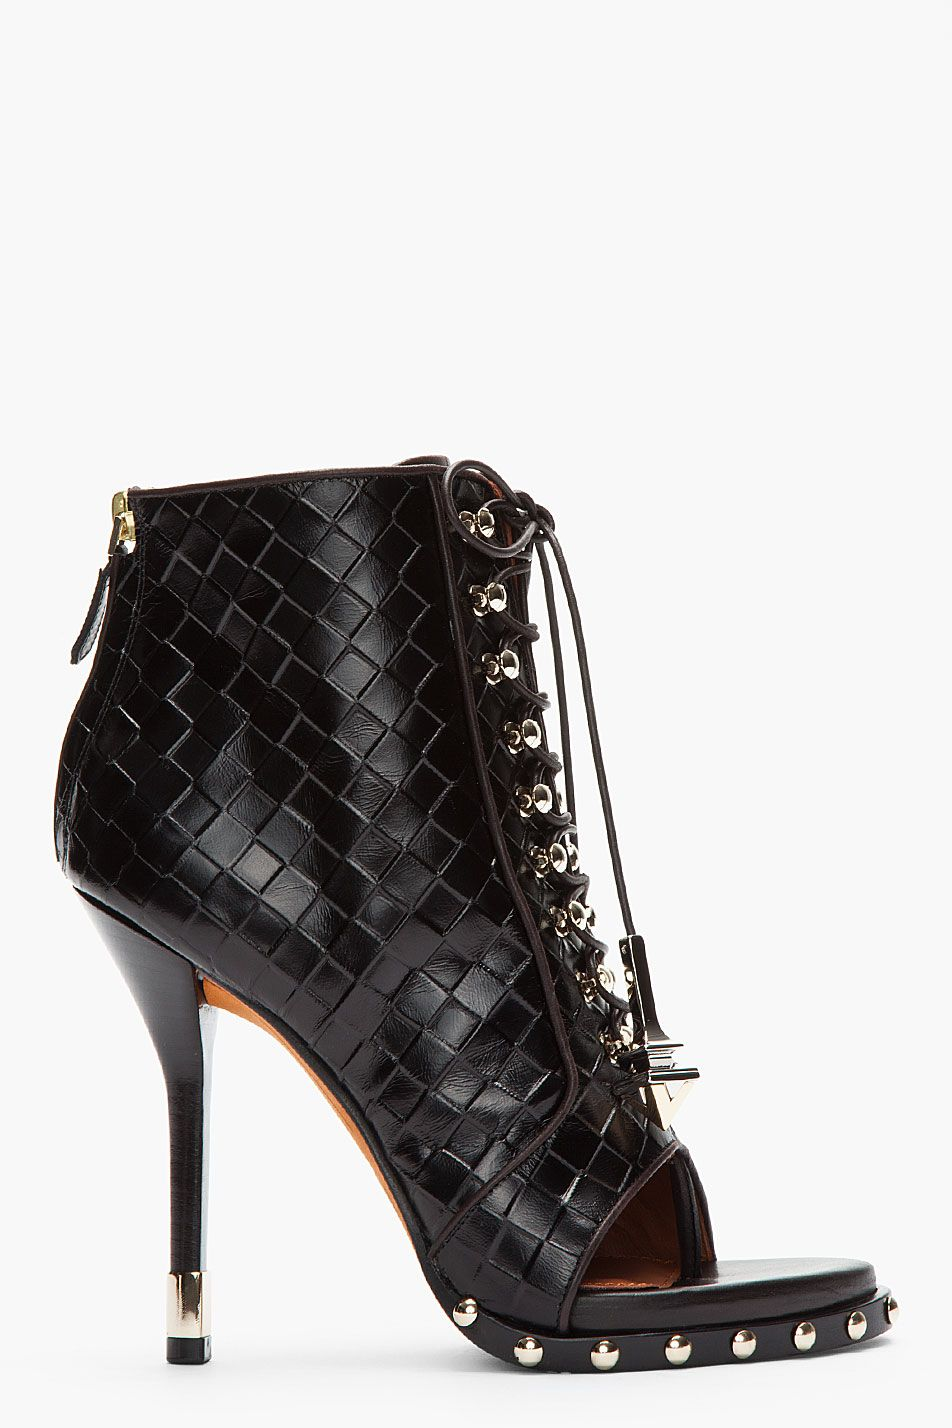 Givenchy Embossed Leather Peep-Toe Booties discount limited edition sale for cheap clearance new arrival the best store to get 1i8bkaEjzJ